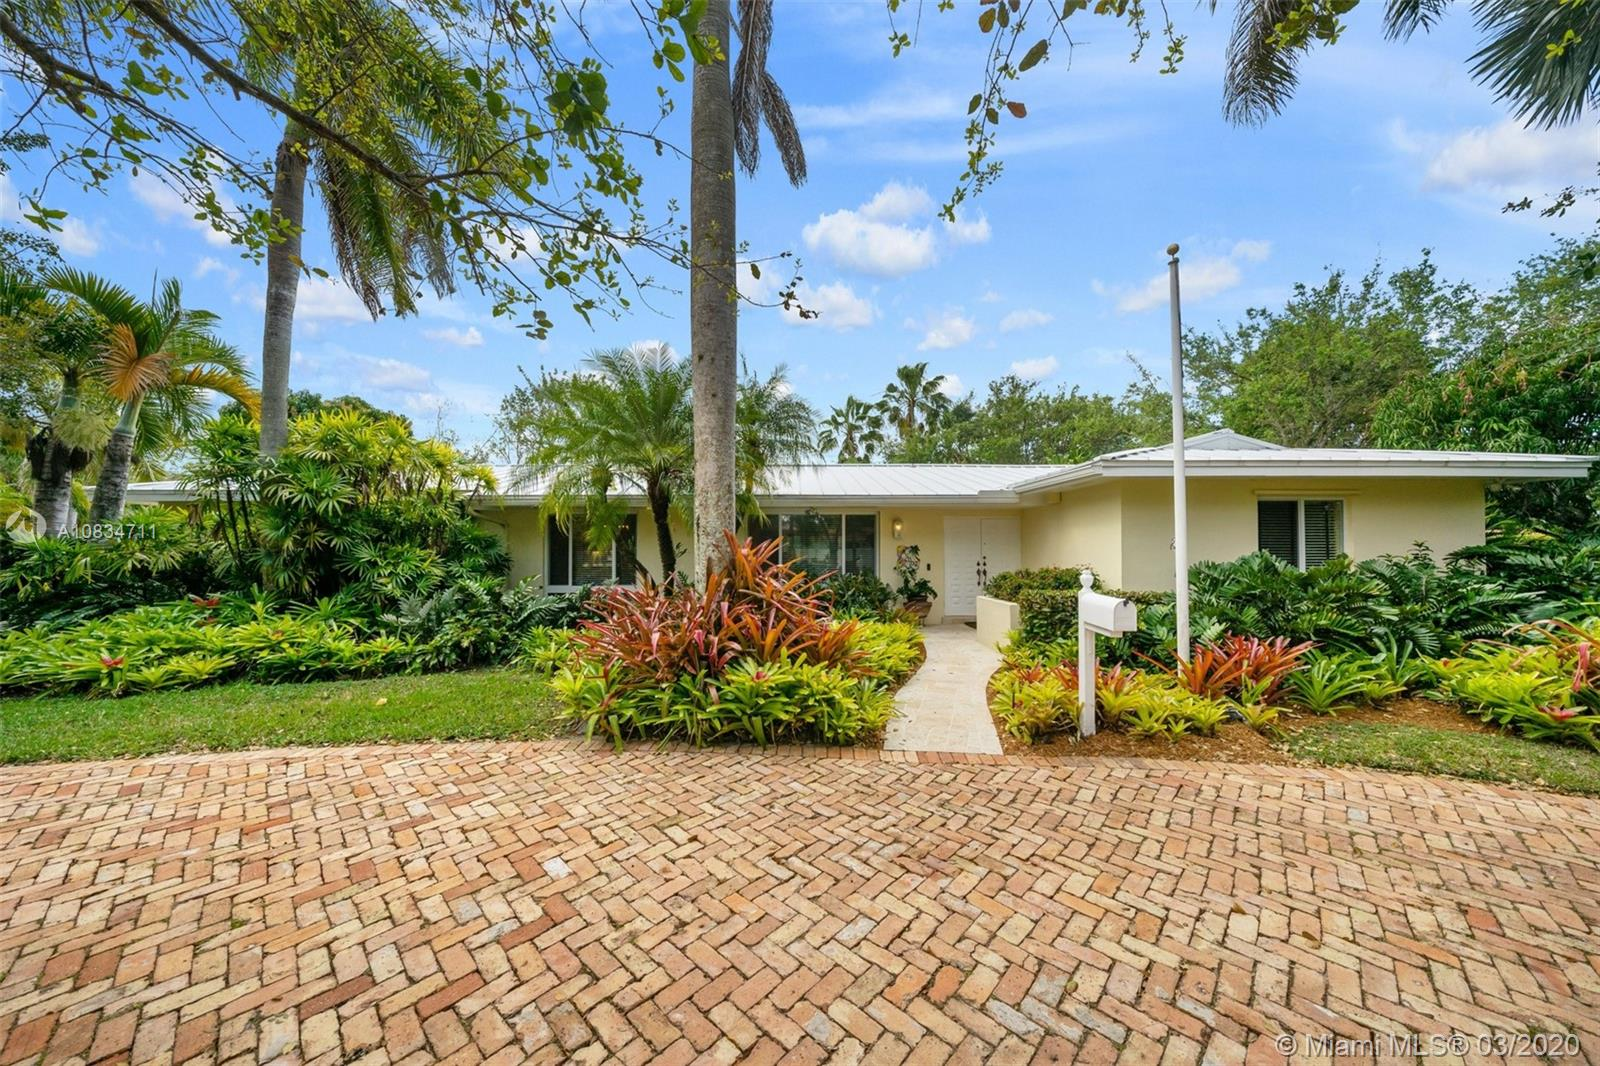 8500 SW 155th Ter, Palmetto Bay, Florida 33157, 4 Bedrooms Bedrooms, ,2 BathroomsBathrooms,Residential,For Sale,8500 SW 155th Ter,A10834711